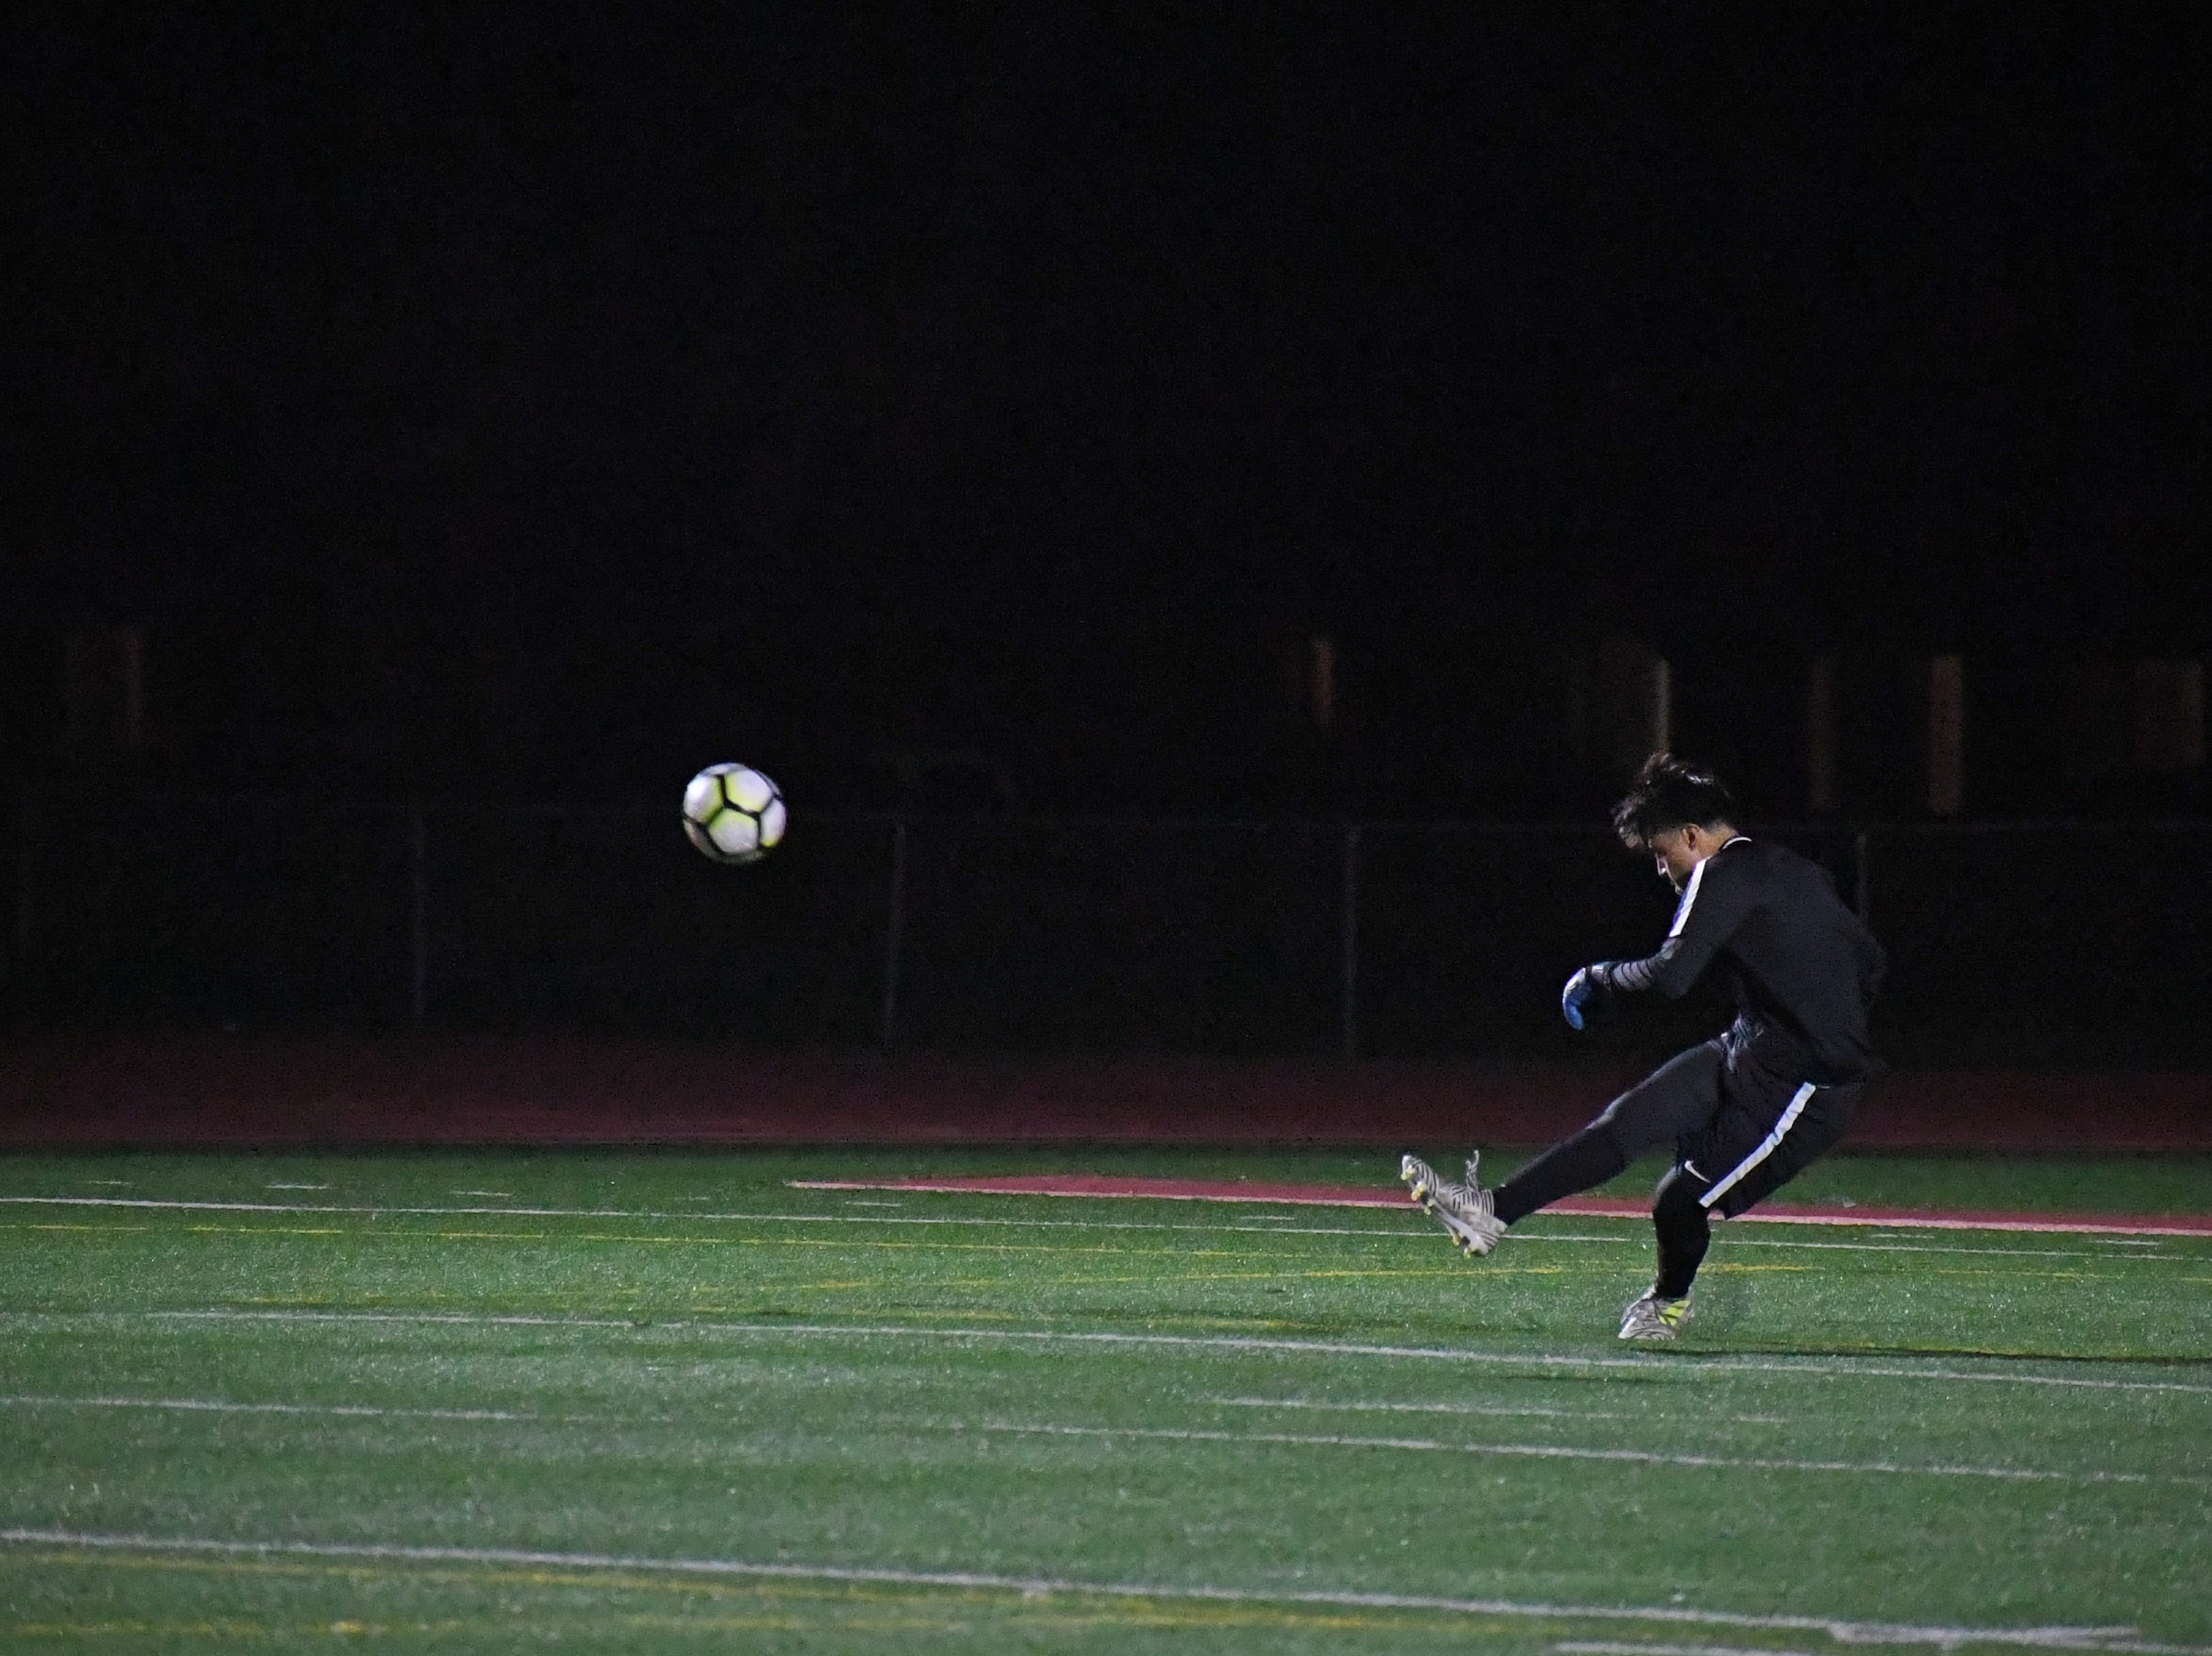 Goalkeeper Luis Canseco launches a kick down the right side after making a save.